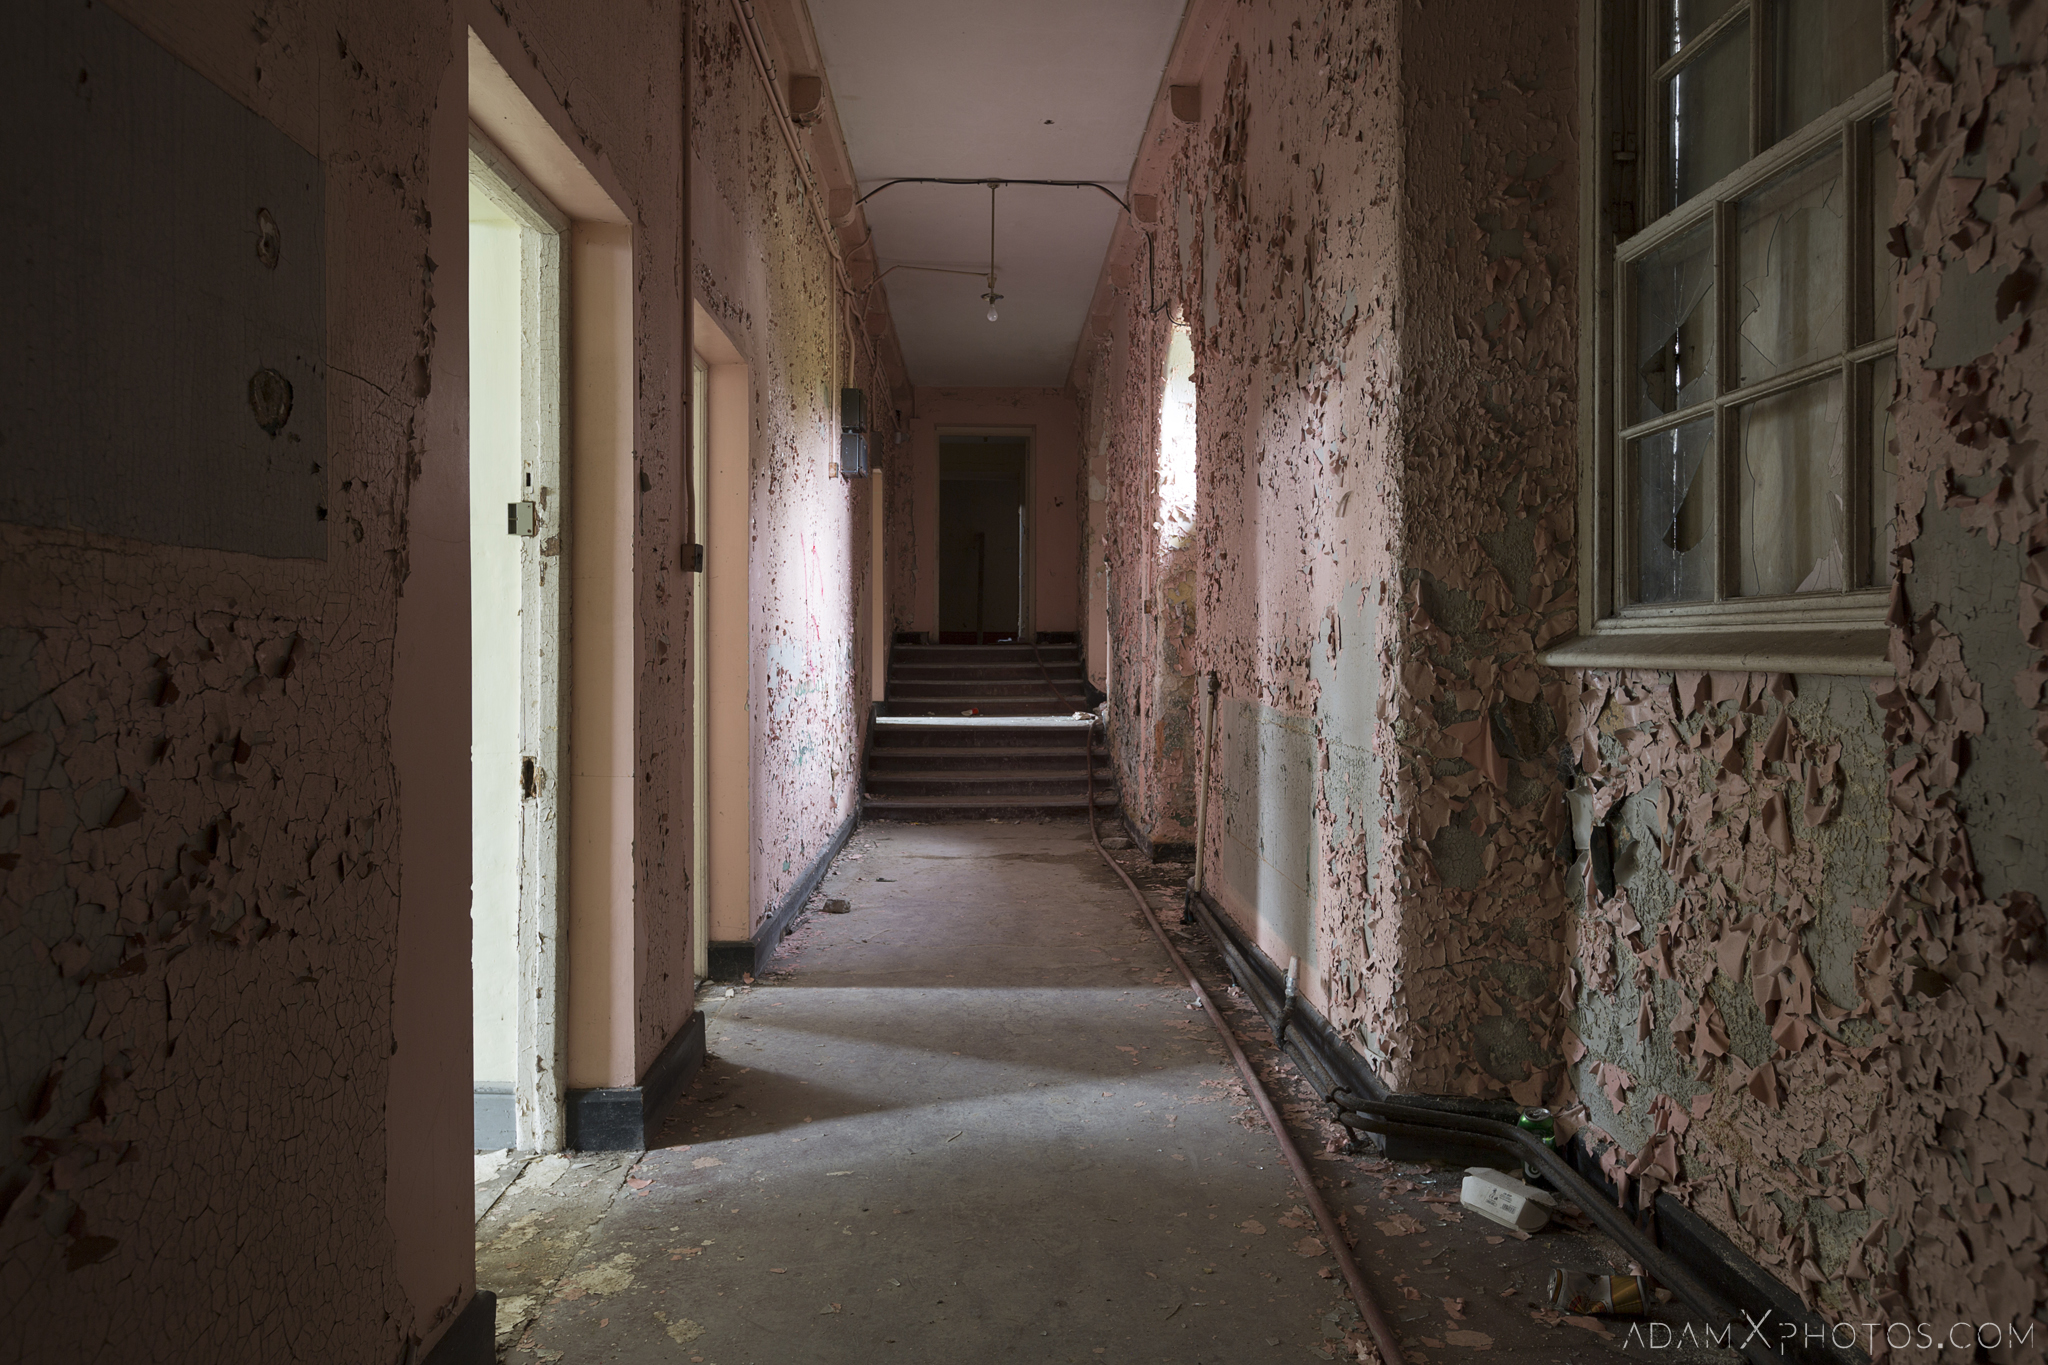 Pink peeling paint corridor Ennis District Lunatic Asylum Our Lady's Hospital Ennis County Clare Adam X Urbex Urban Exploration Ireland Ballinasloe Access 2017 Abandoned decay lost forgotten derelict location creepy haunting eerie